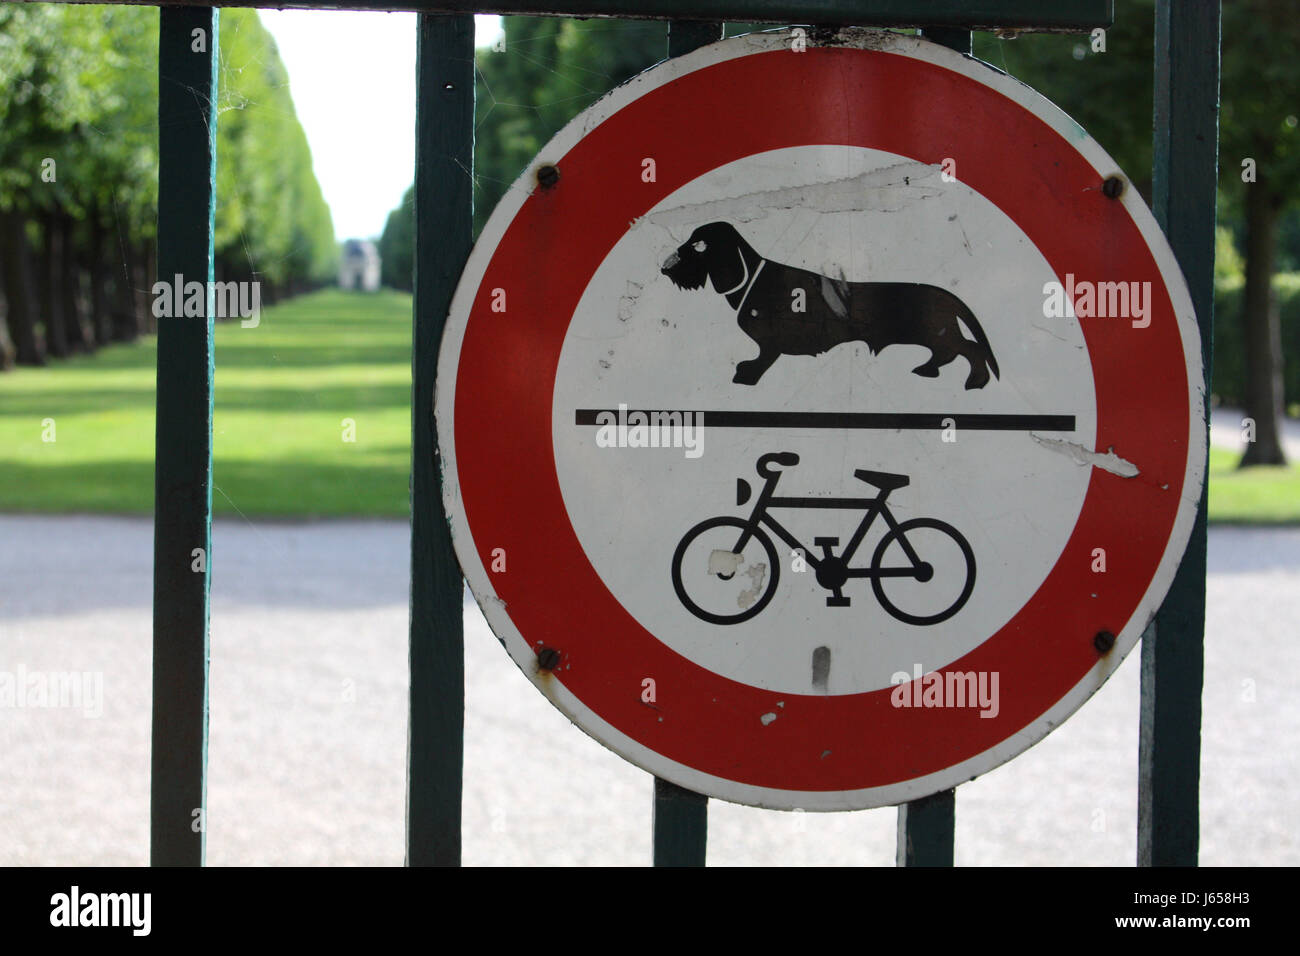 Dog And Bike Ban Stock Photo Royalty Free Image 141487391 Alamy